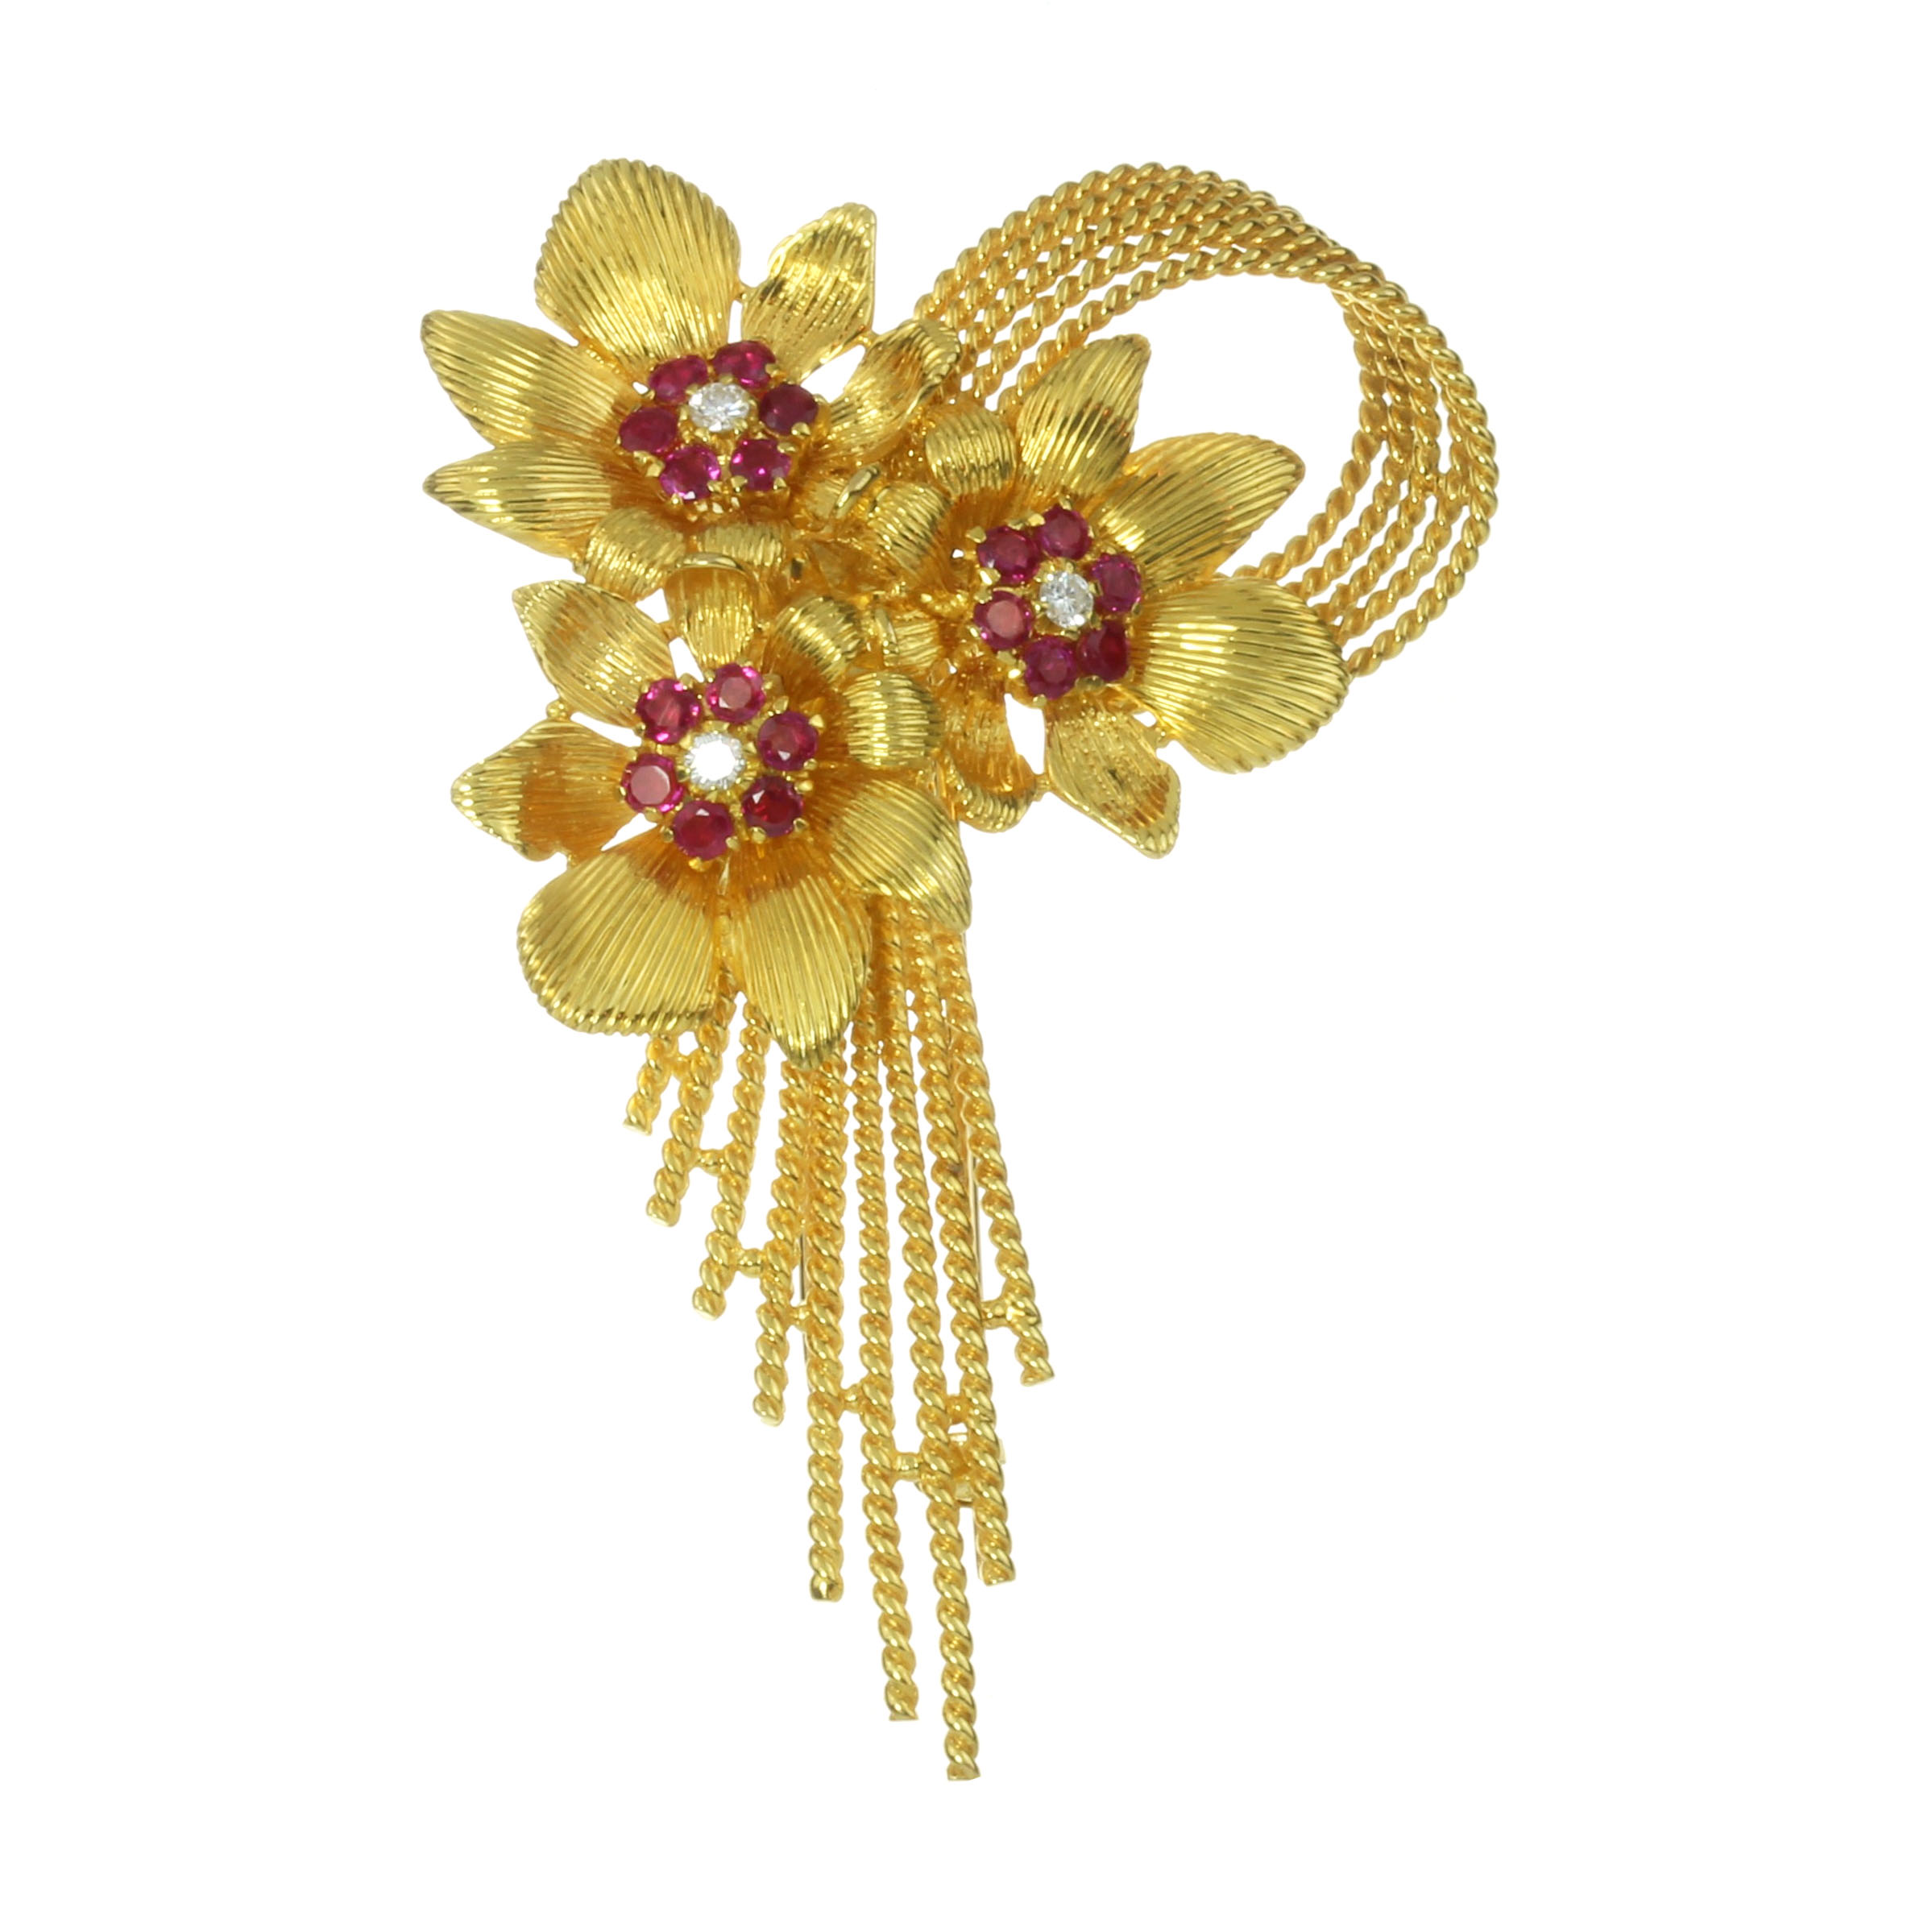 A VINTAGE RUBY AND DIAMOND BROOCH, KUTCHINSKY 1959 in 18ct yellow gold, designed as a trio of